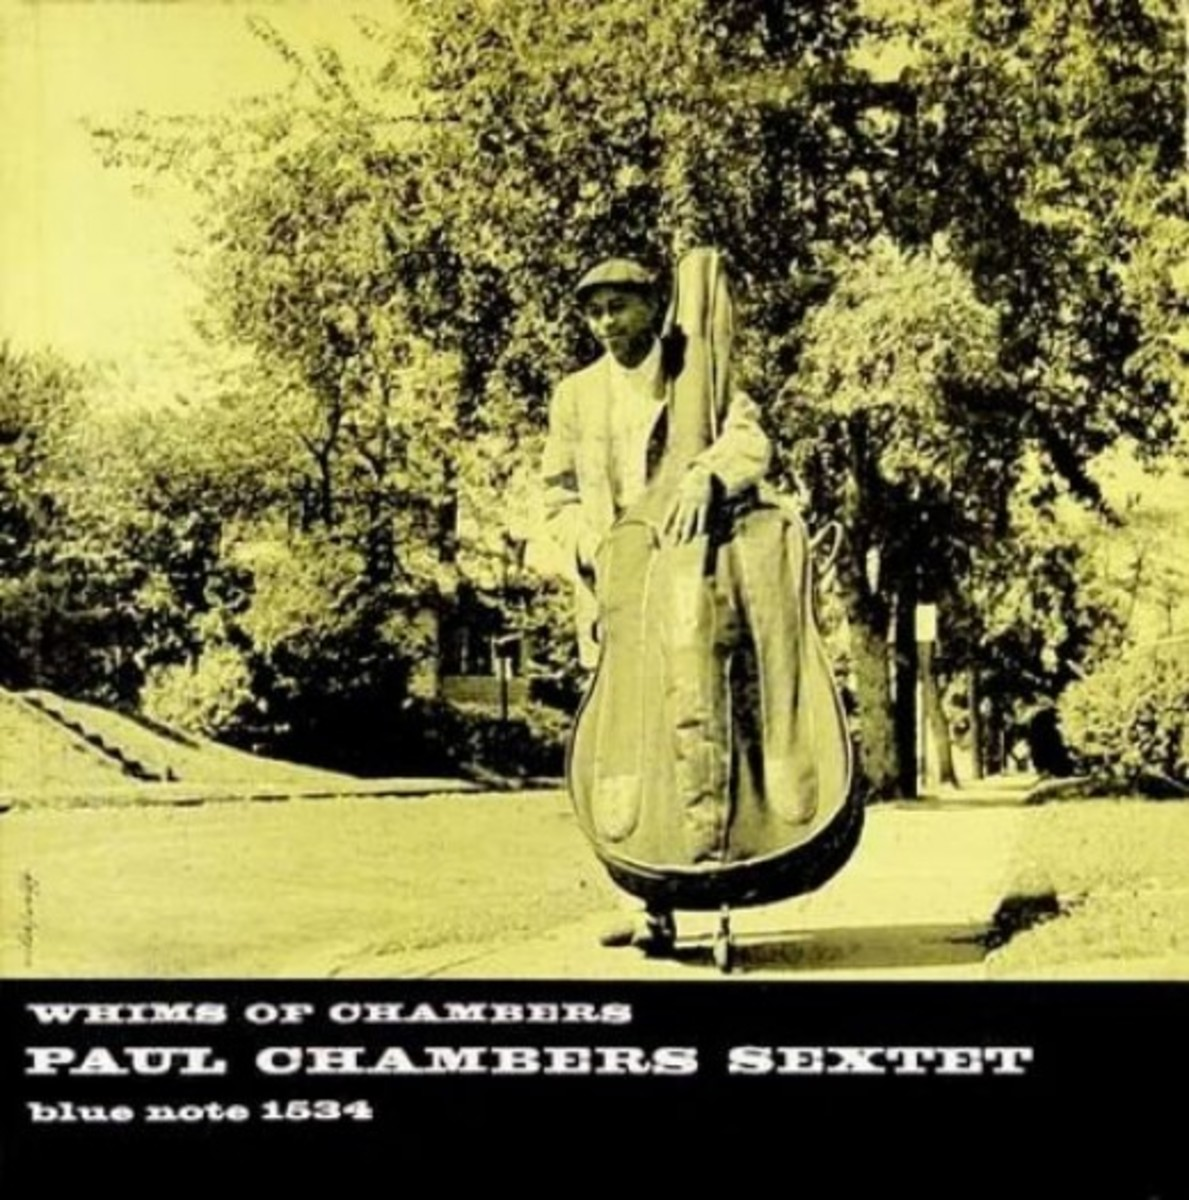 "Paul Chambers ""Whims of Chambers"" Blue Note Records BLP 1534 12"" LP Vinyl Record (1956) Album Cover Design by Reid Miles Photograph by Francis Wolff"